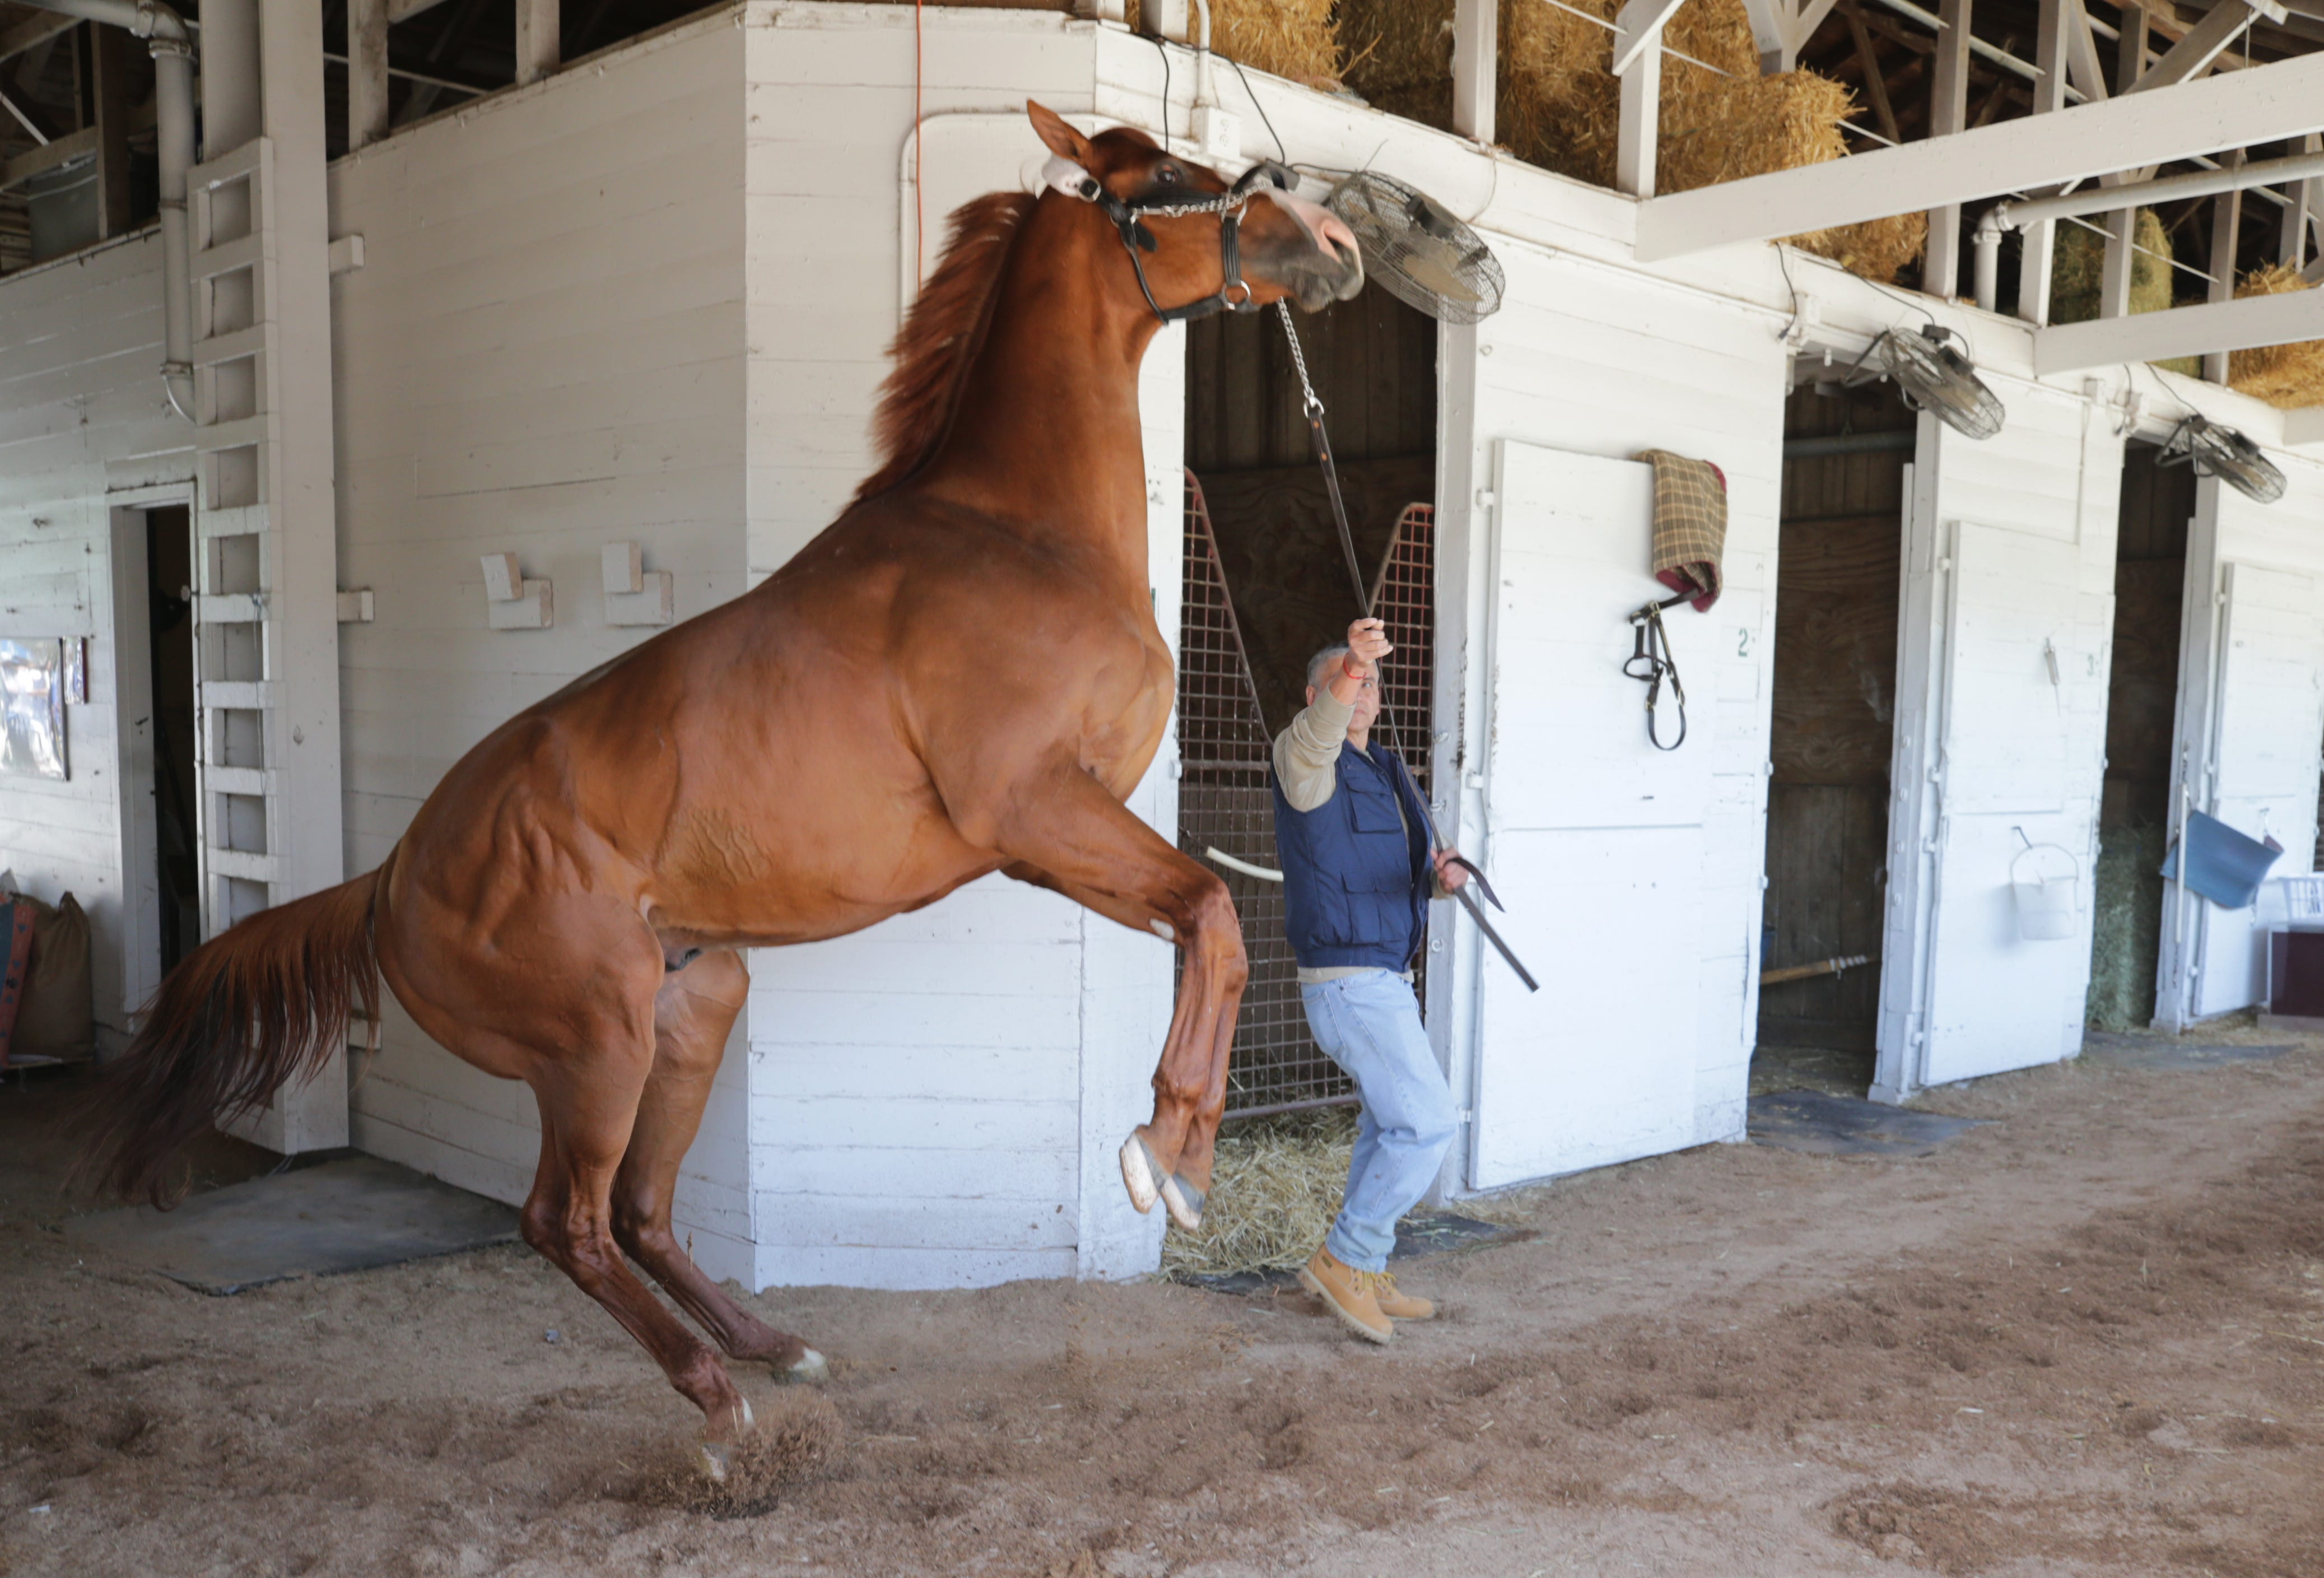 fc986bdd471e0 http://www.courier-journal.com/picture-gallery/sports/horses/triple ...